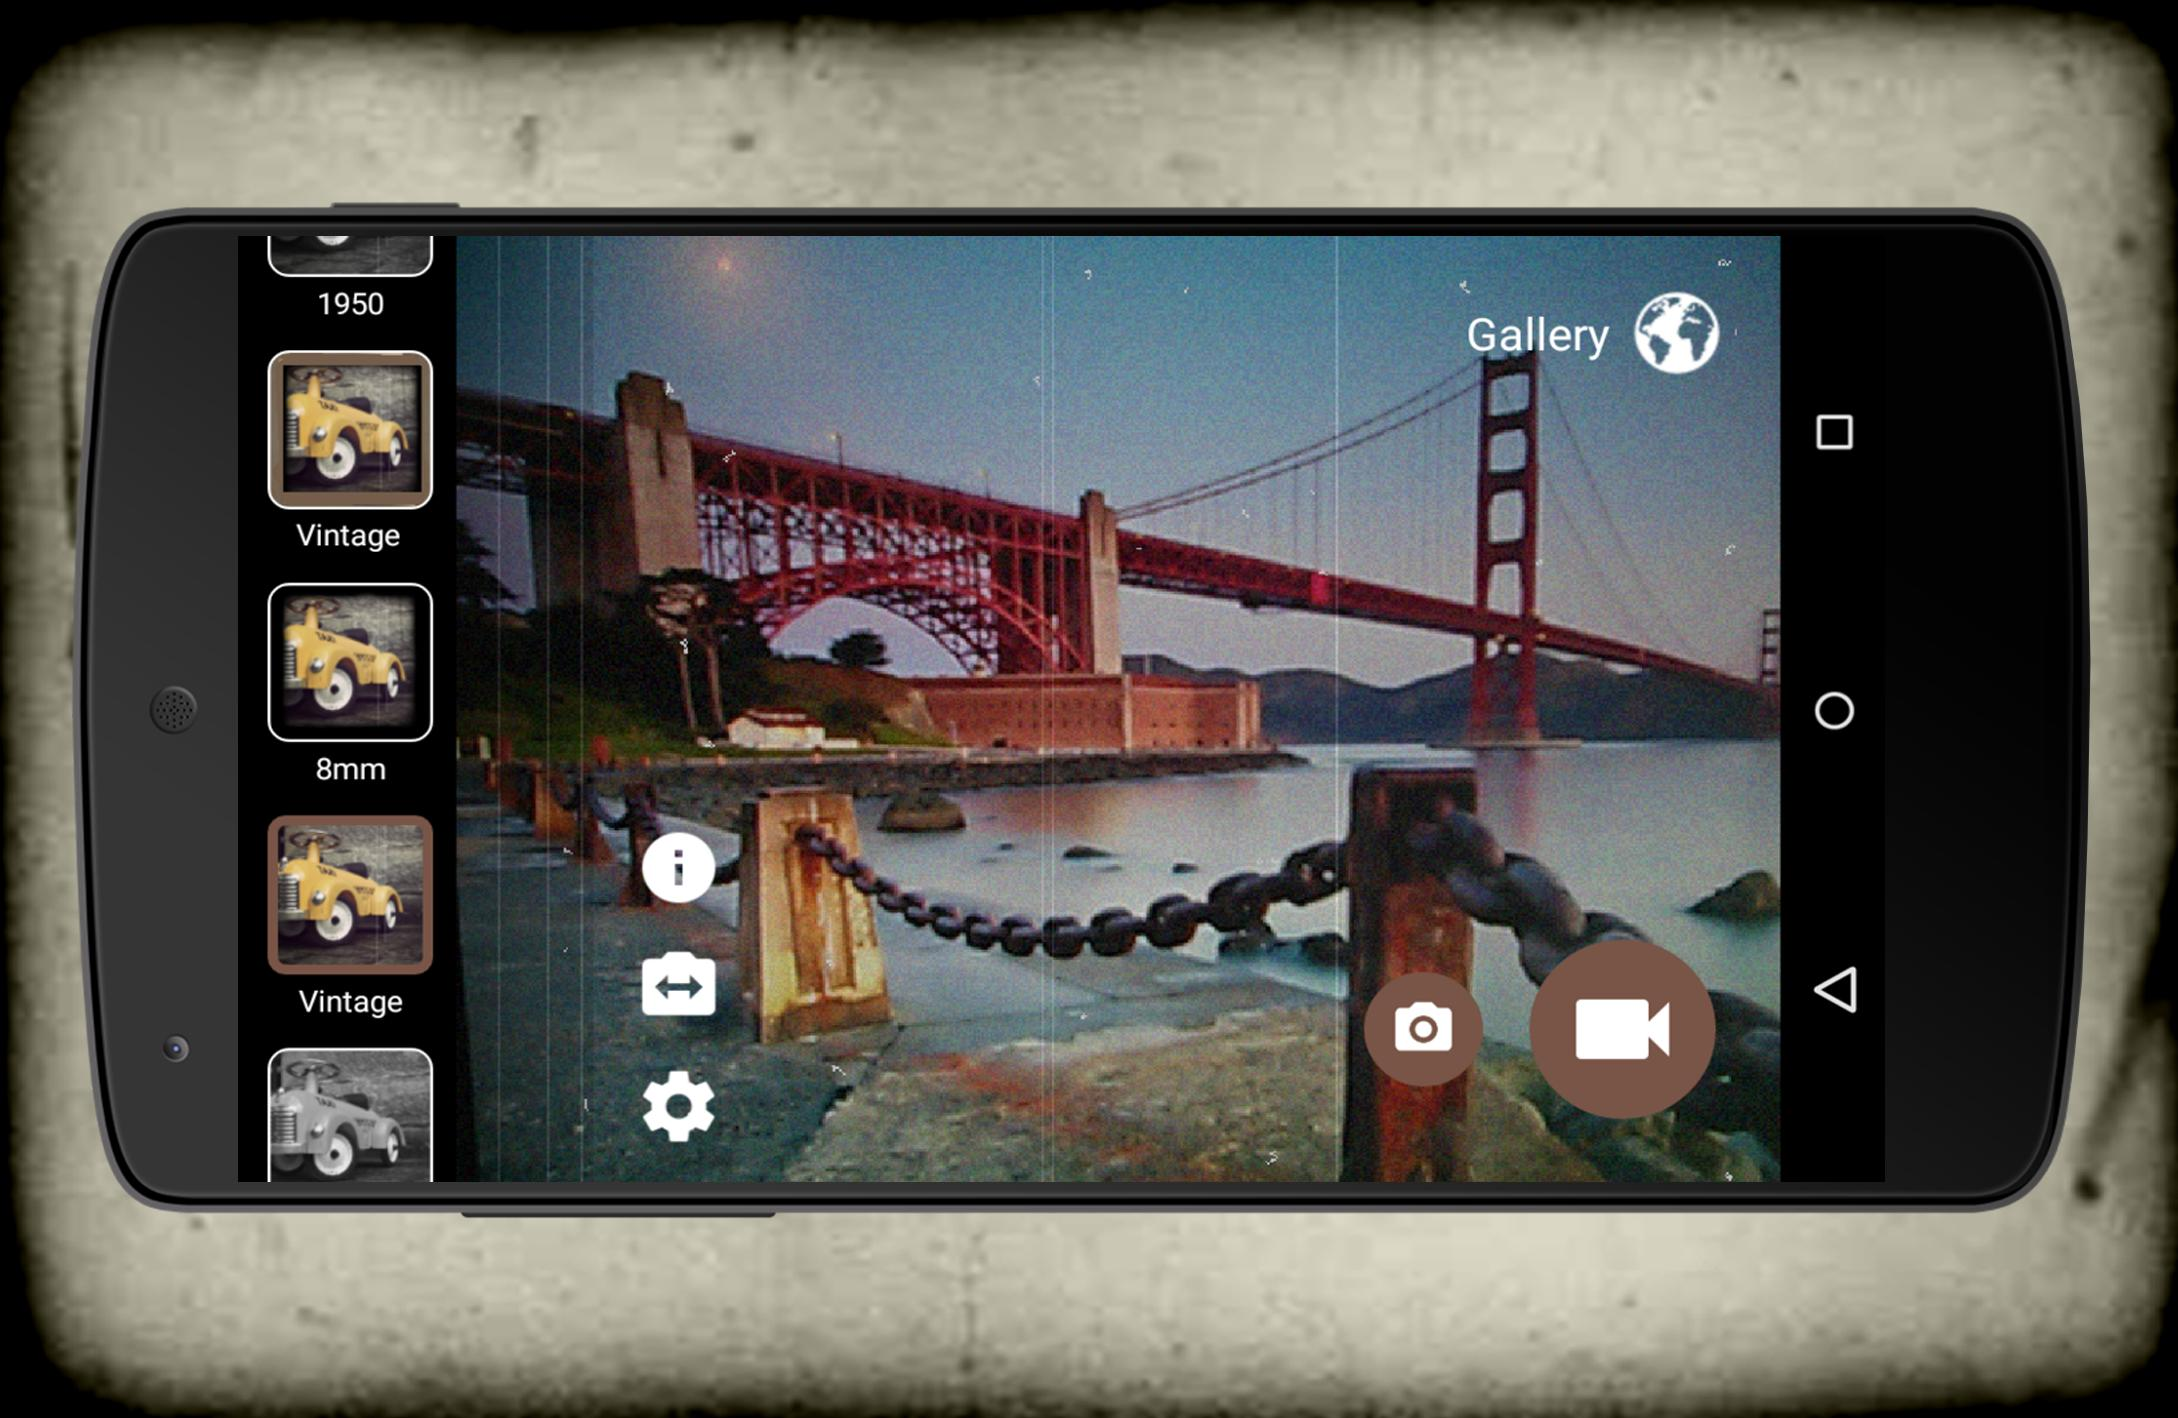 Vintage Retro Camera + VHS for Android - APK Download